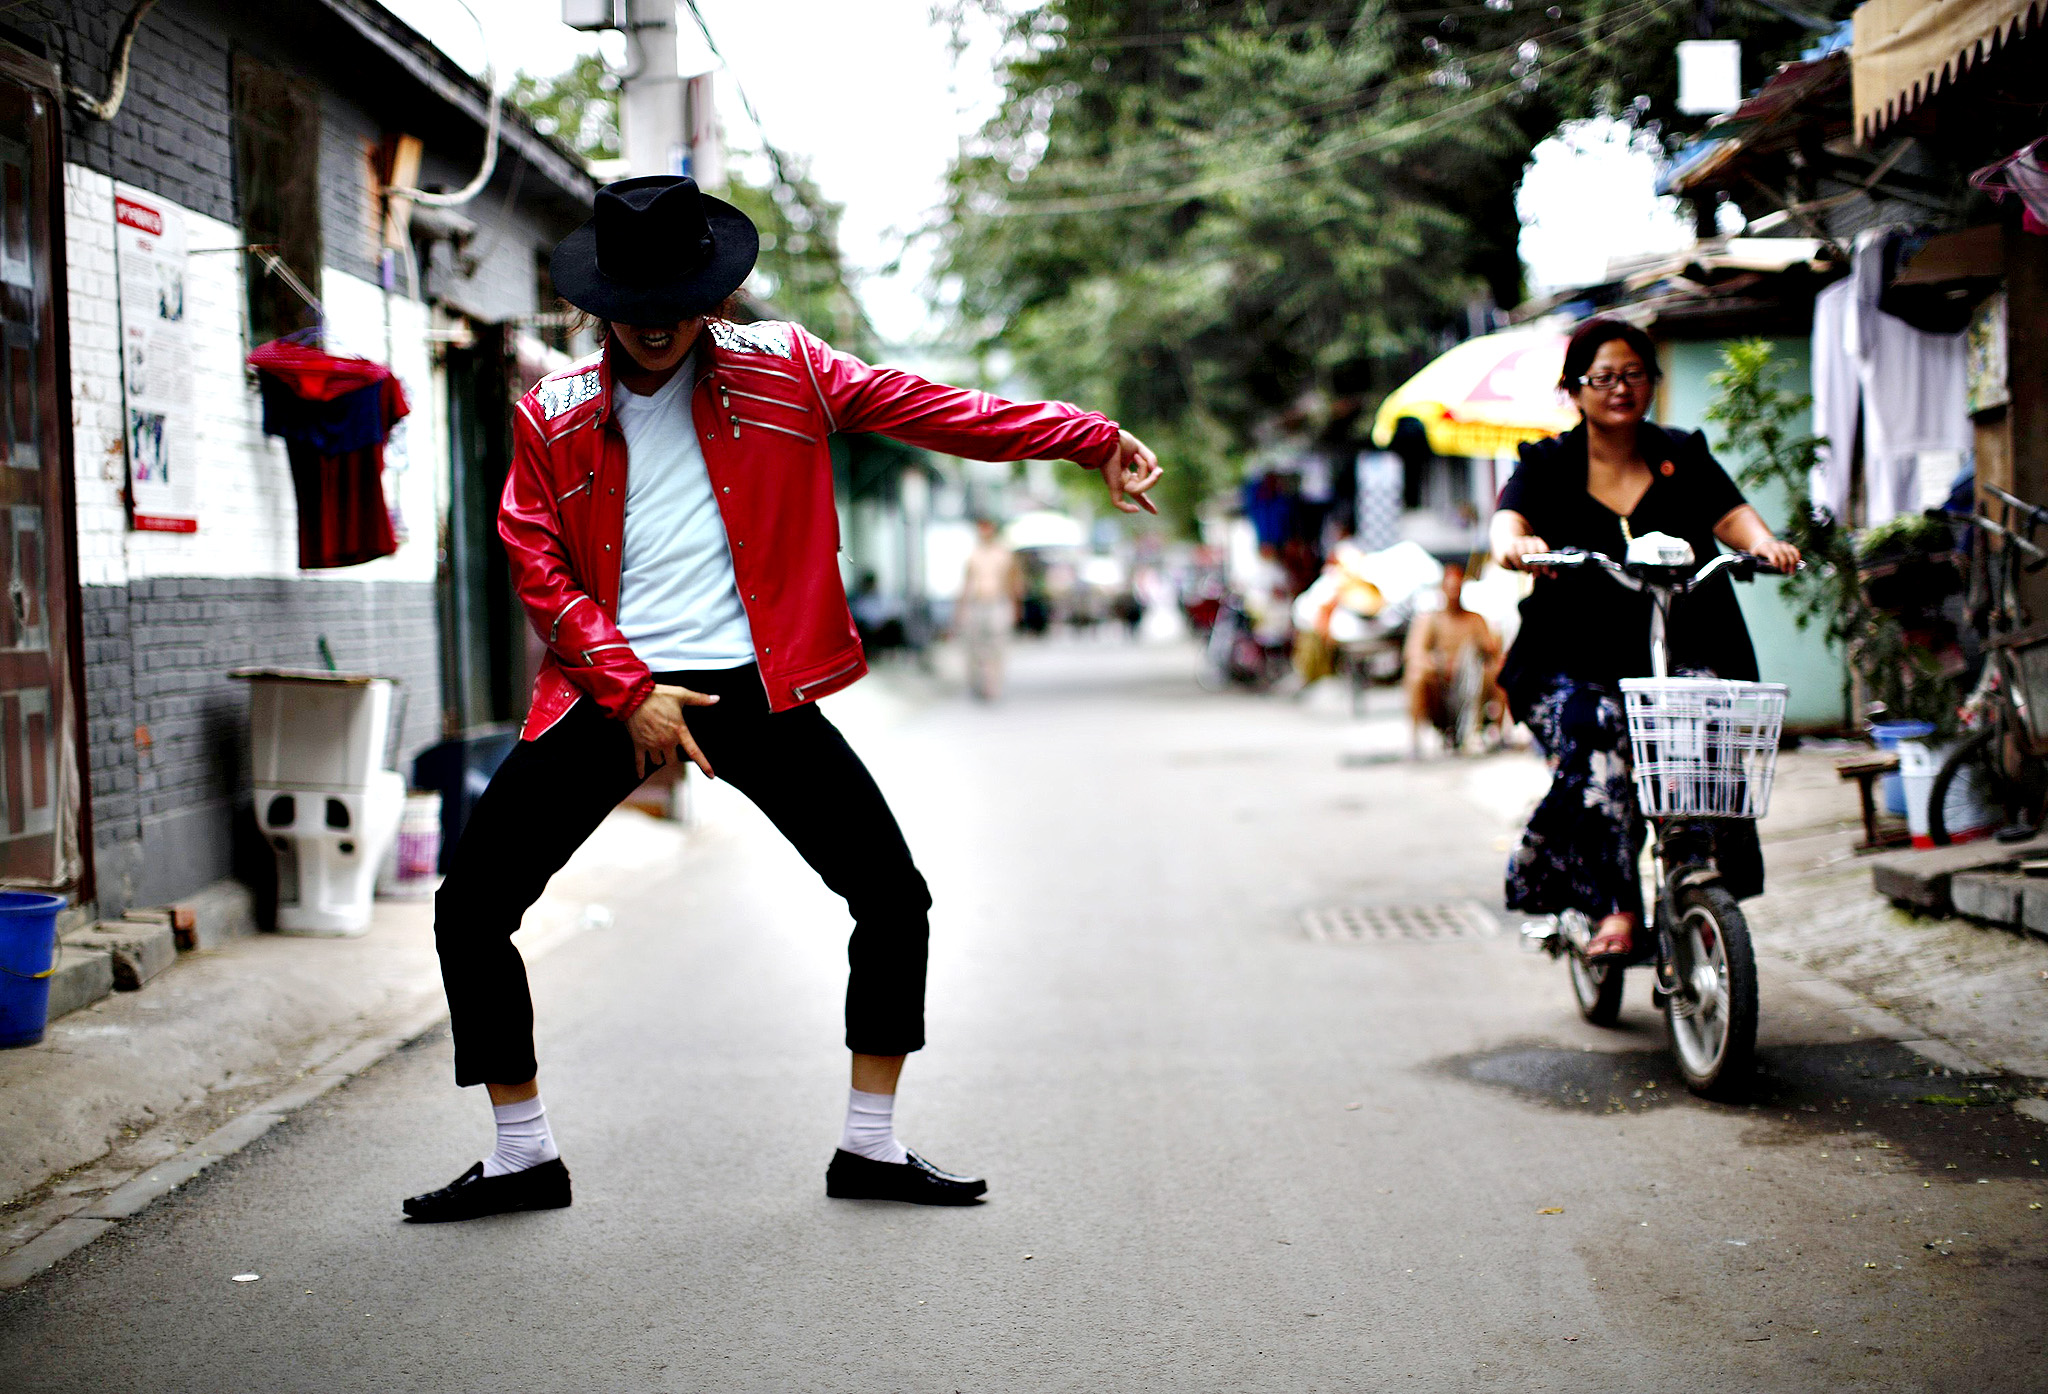 Zhang Guanhui, impersonating Michael Jackson, dances in front of his house located in a village for migrant workers during an interview with Reuters in Beijing...Zhang Guanhui, impersonating Michael Jackson, dances in front of his house located in a village for migrant workers during an interview with Reuters in Beijing. Zhang, born in 1984, quit elementary school and has since held jobs as a factory worker, waiter, and security guard. After watching a Michael Jackson music video four years ago for the first time, Zhang says he became fascinated and now puts on shows on the street and small stages impersonating the King of Pop.